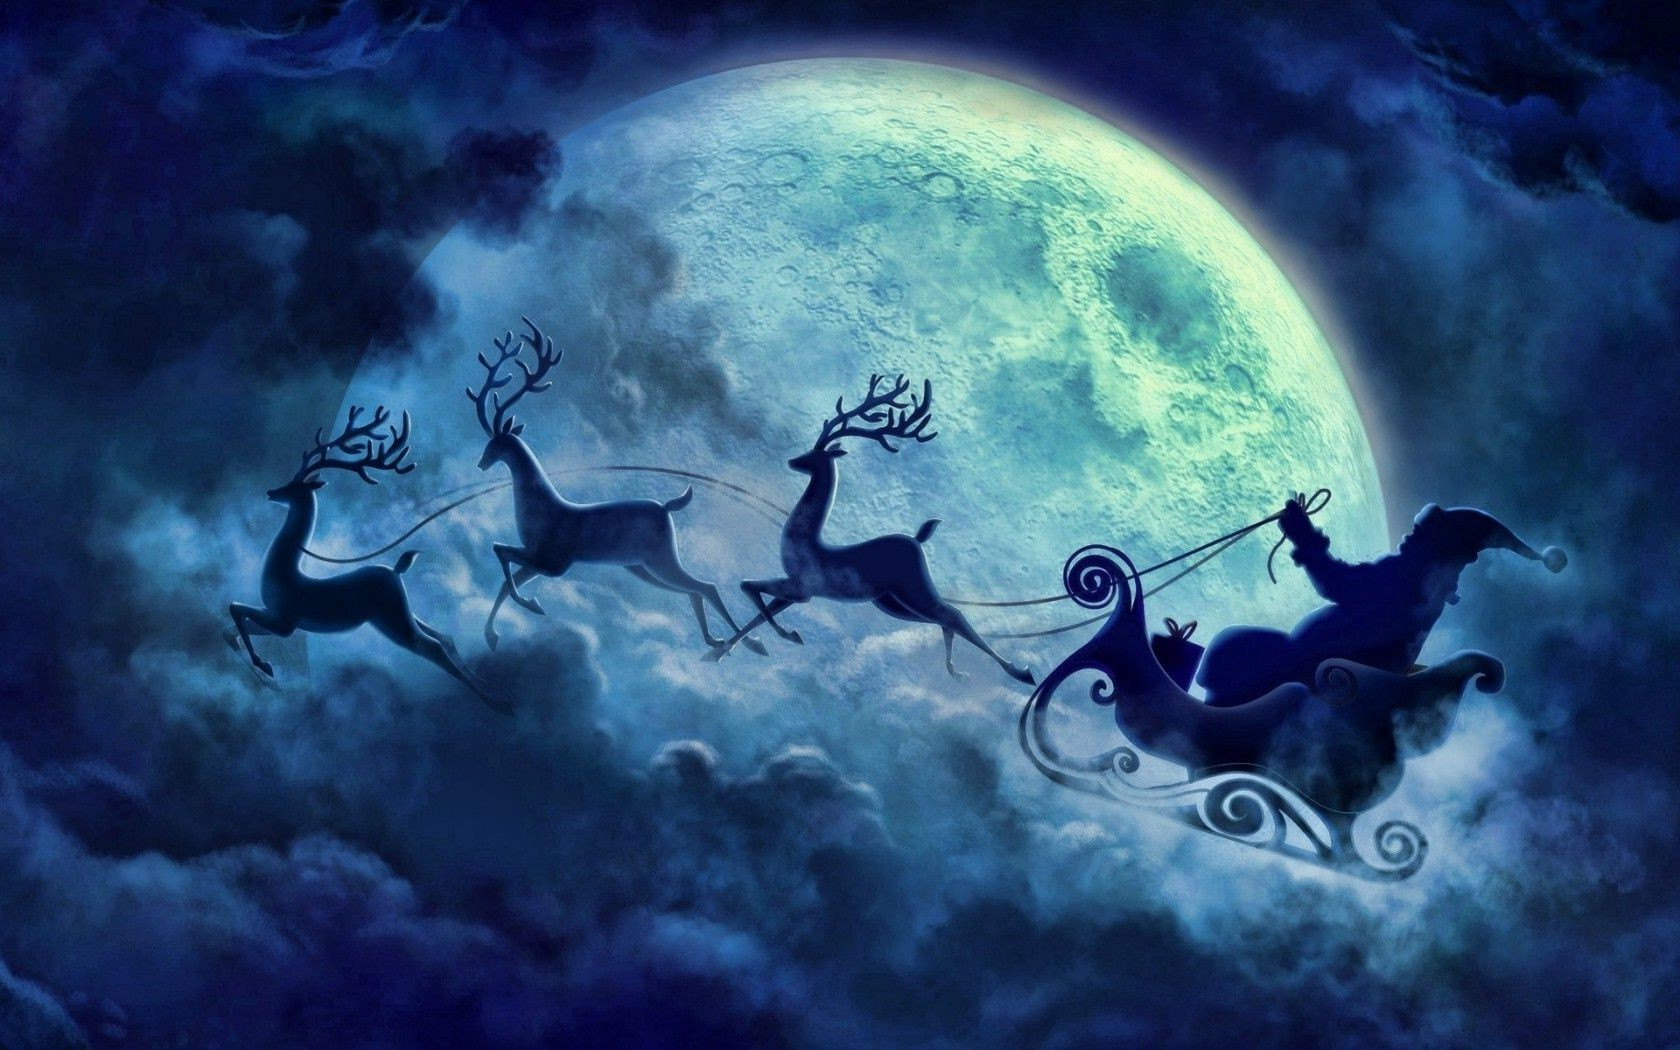 Night Blue Cloud Flying Reindeer Moon Santa Christmas